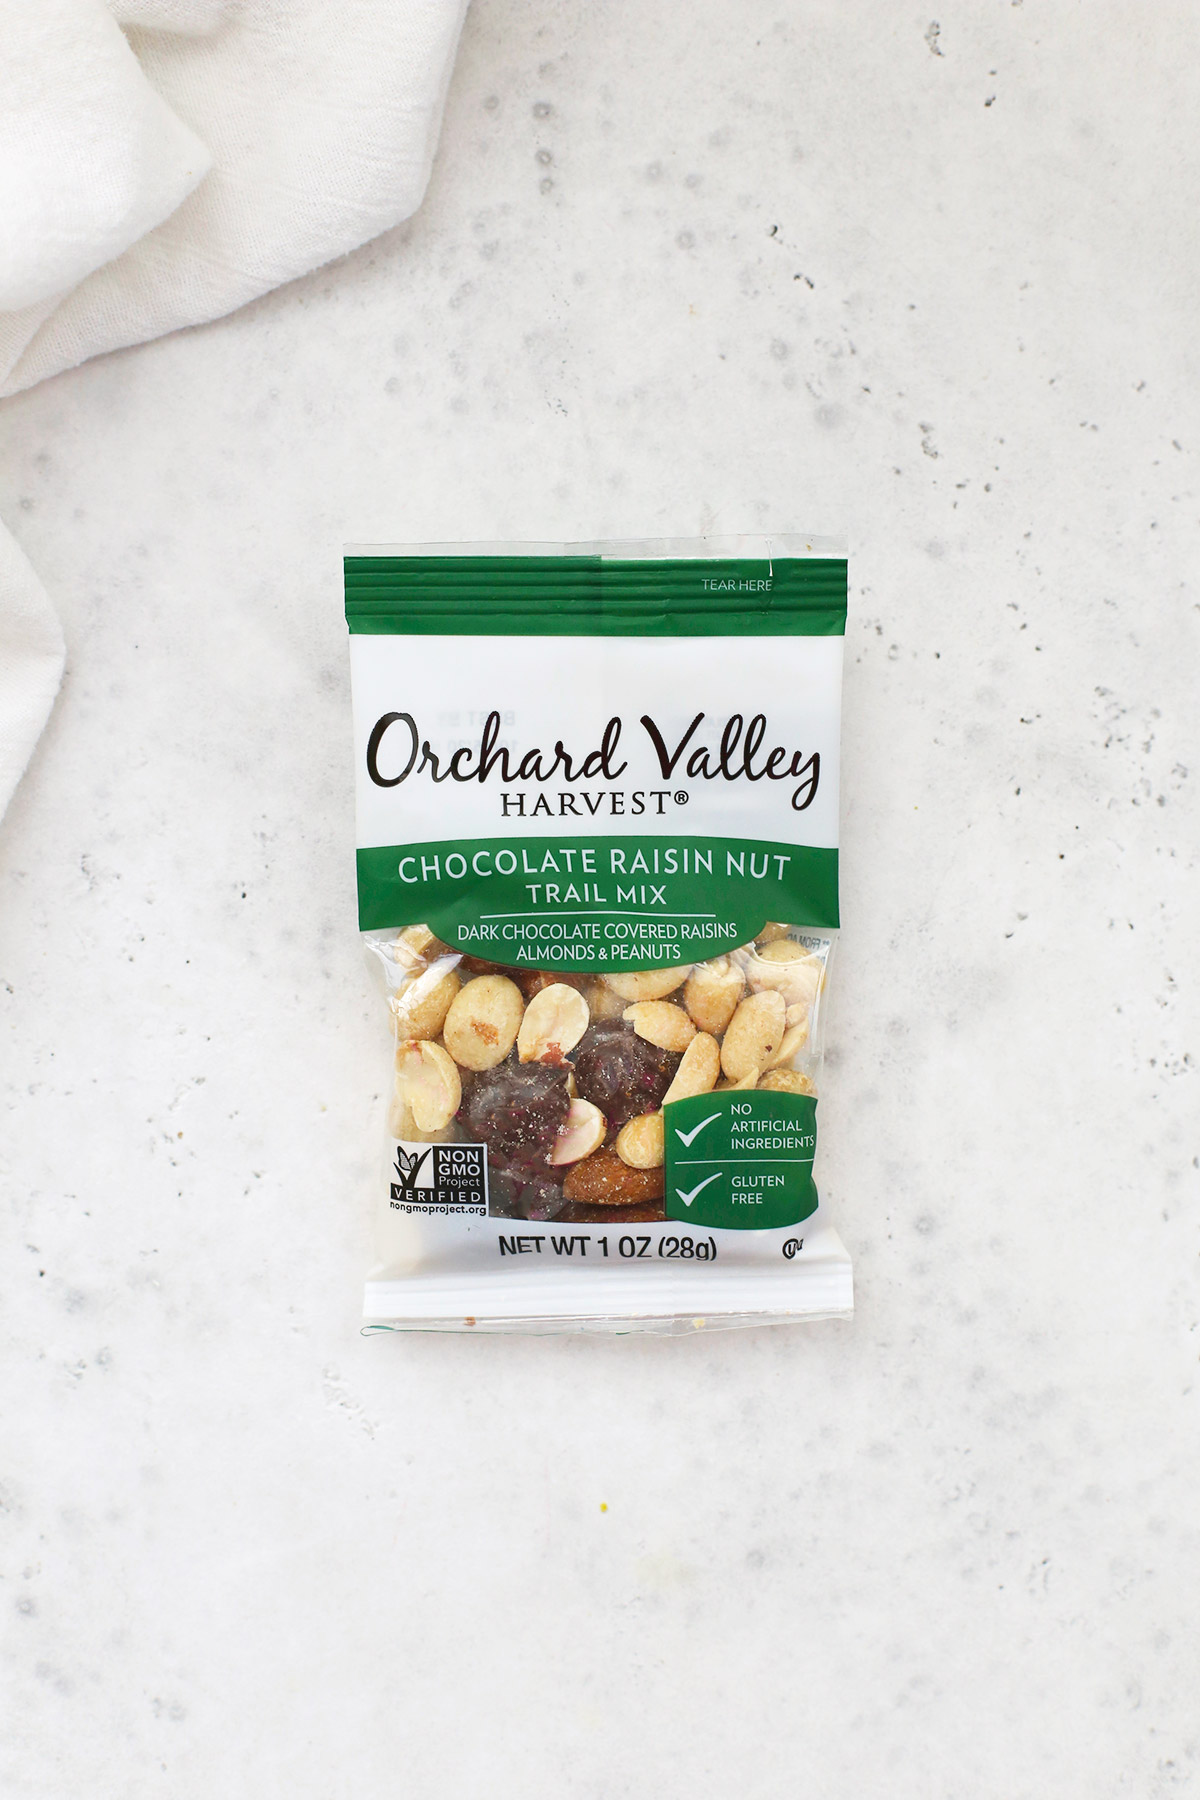 A bag of Orchard Valley Harvest Chocolate Raisin Trail Mix on a white background